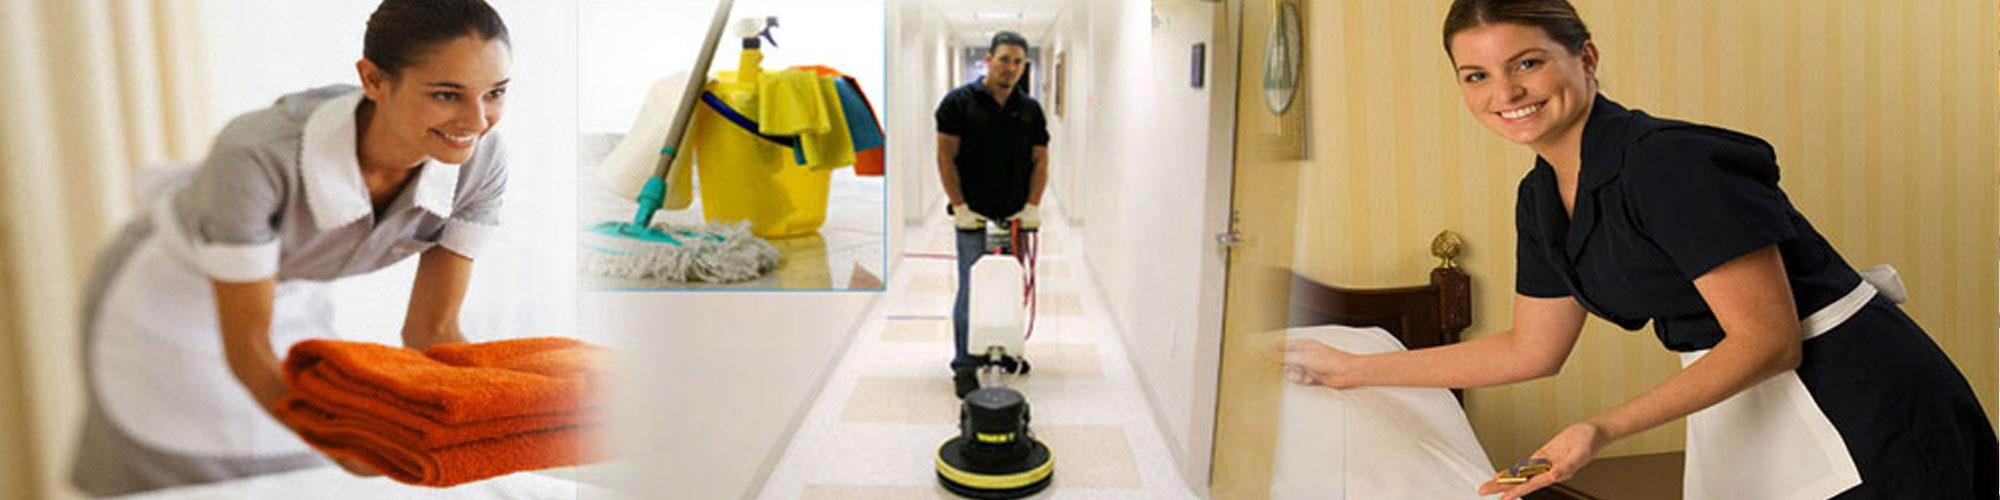 Best House keeping Services in Chennai.  We are the Best House keeping Service Provider in Chennai. We Do all The House Keeping Services in Chennai in Better manner. - by Klean Catcher, Chennai